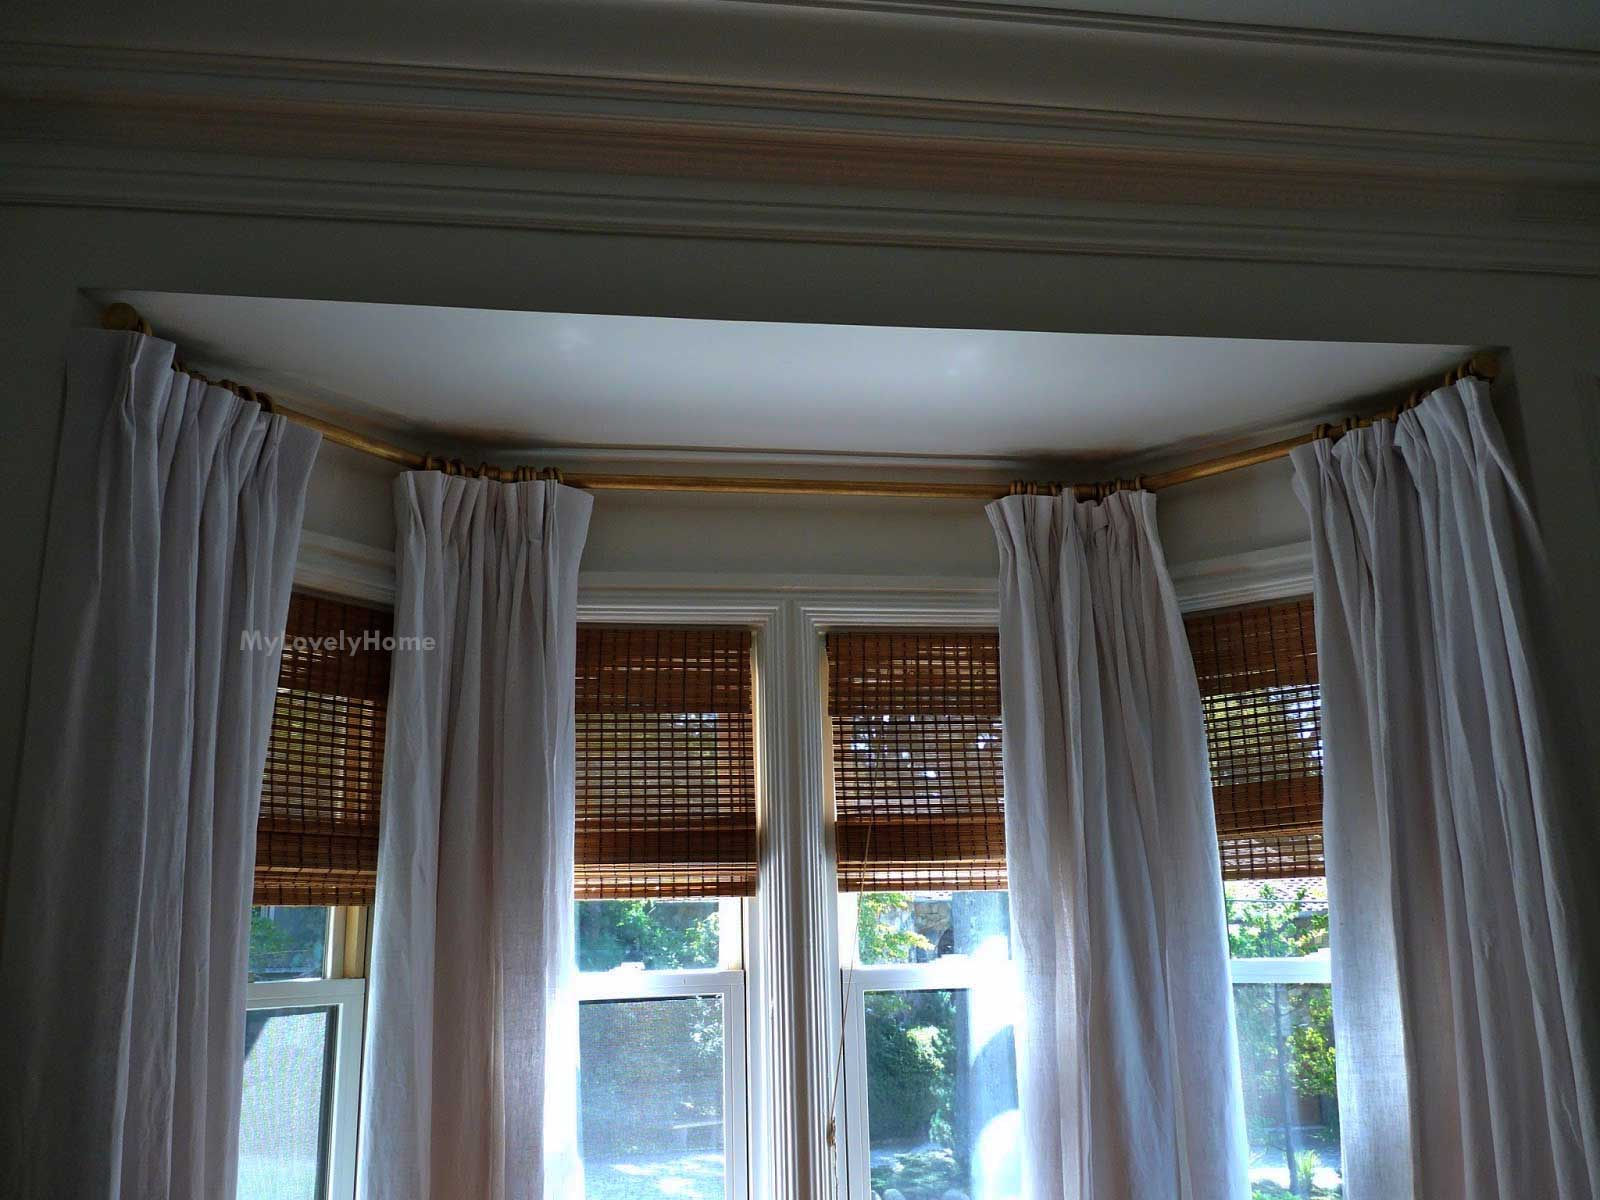 Window Bay Curtain Pole Instalation Tips My Lovely Home